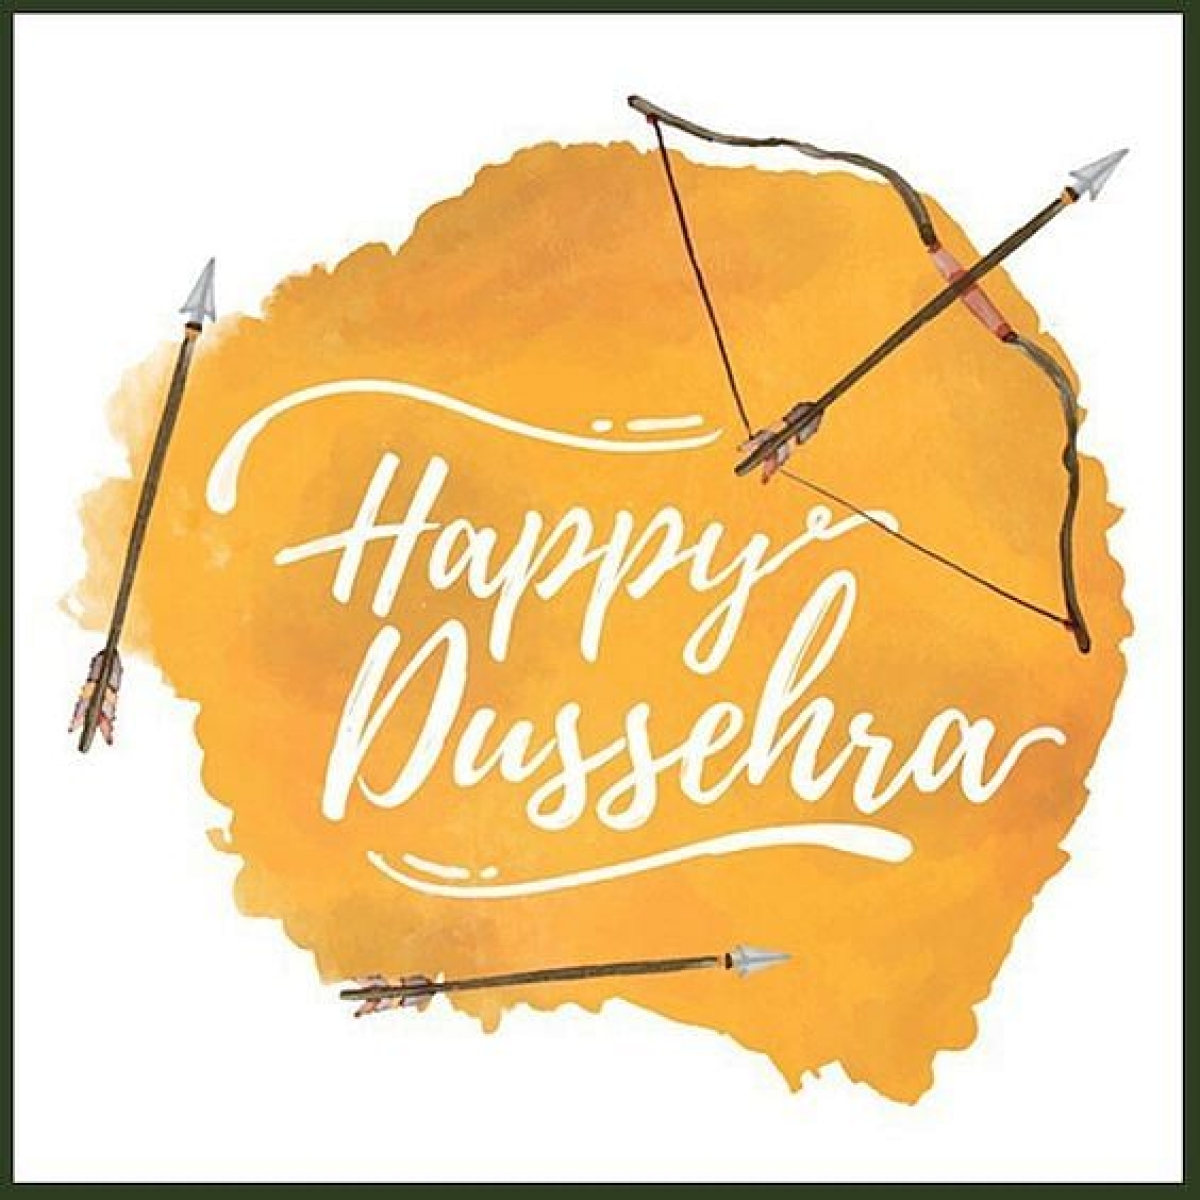 Happy Dussehra 2020: Wishes, quotes, WhatsApp messages and Facebook statuses to share with your loved ones